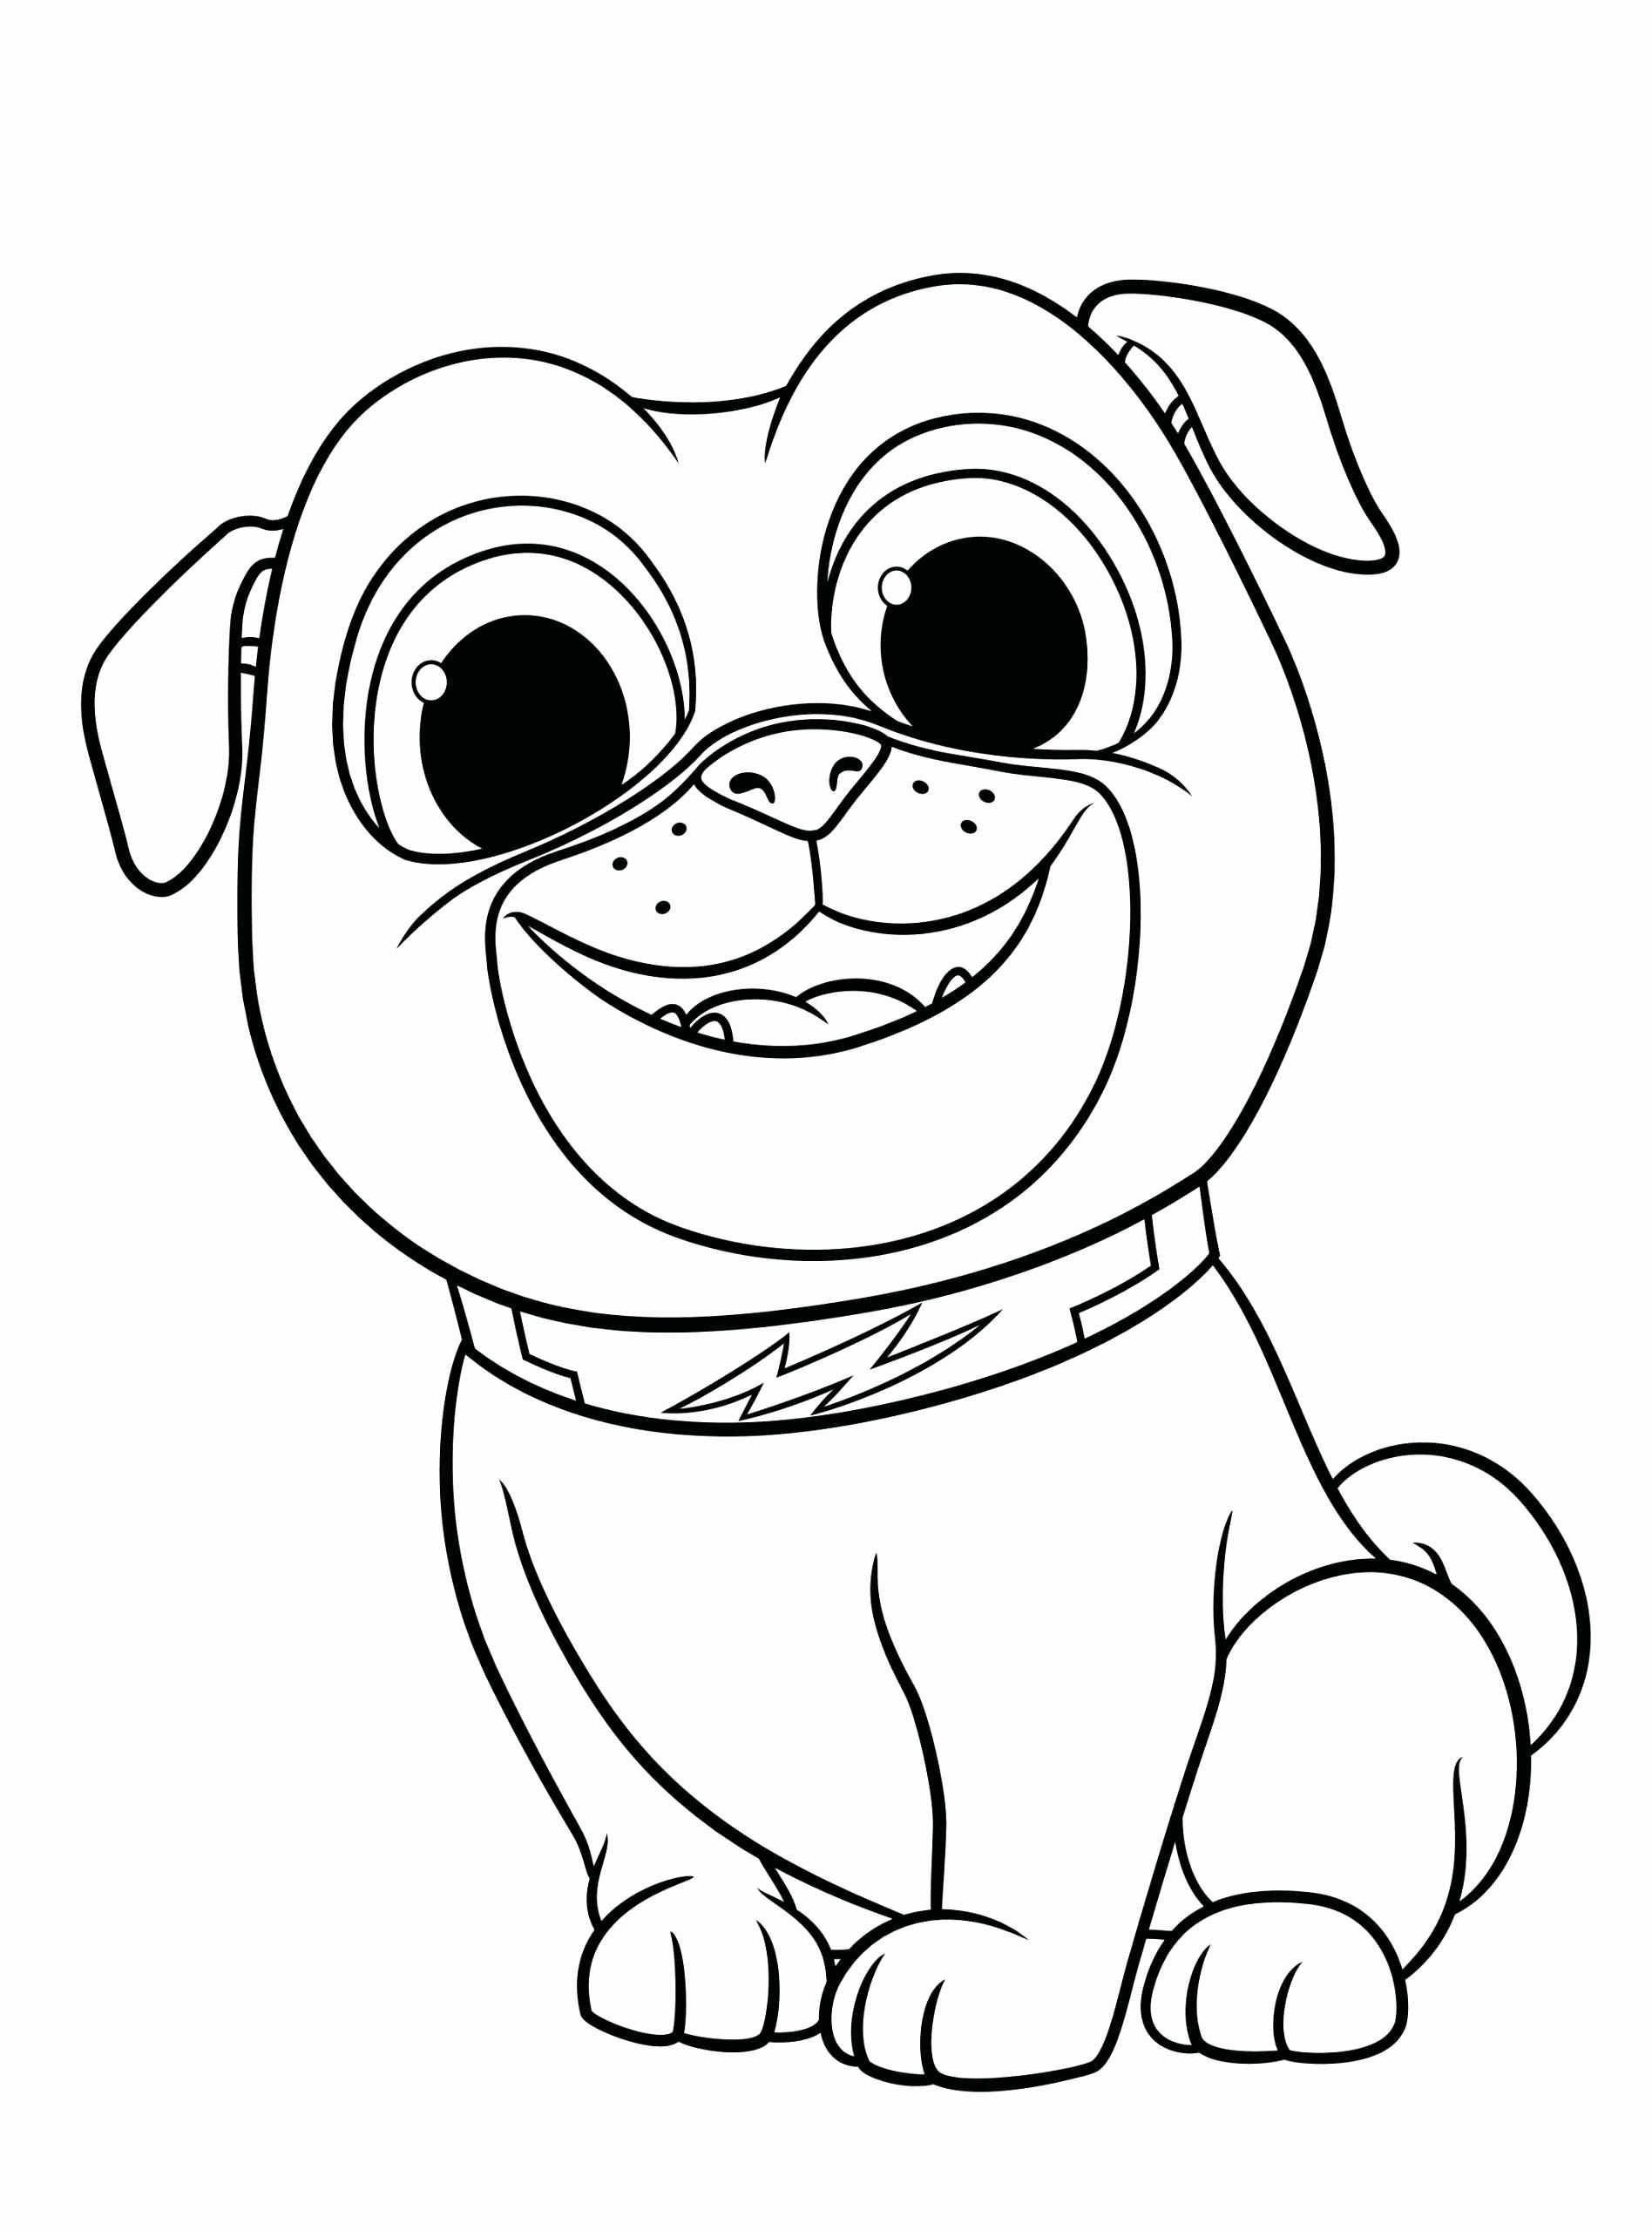 Animal Coloring Pages For Kids Beagle Dog To Print Out Puppy Coloring Pages Dog Coloring Page Unicorn Coloring Pages